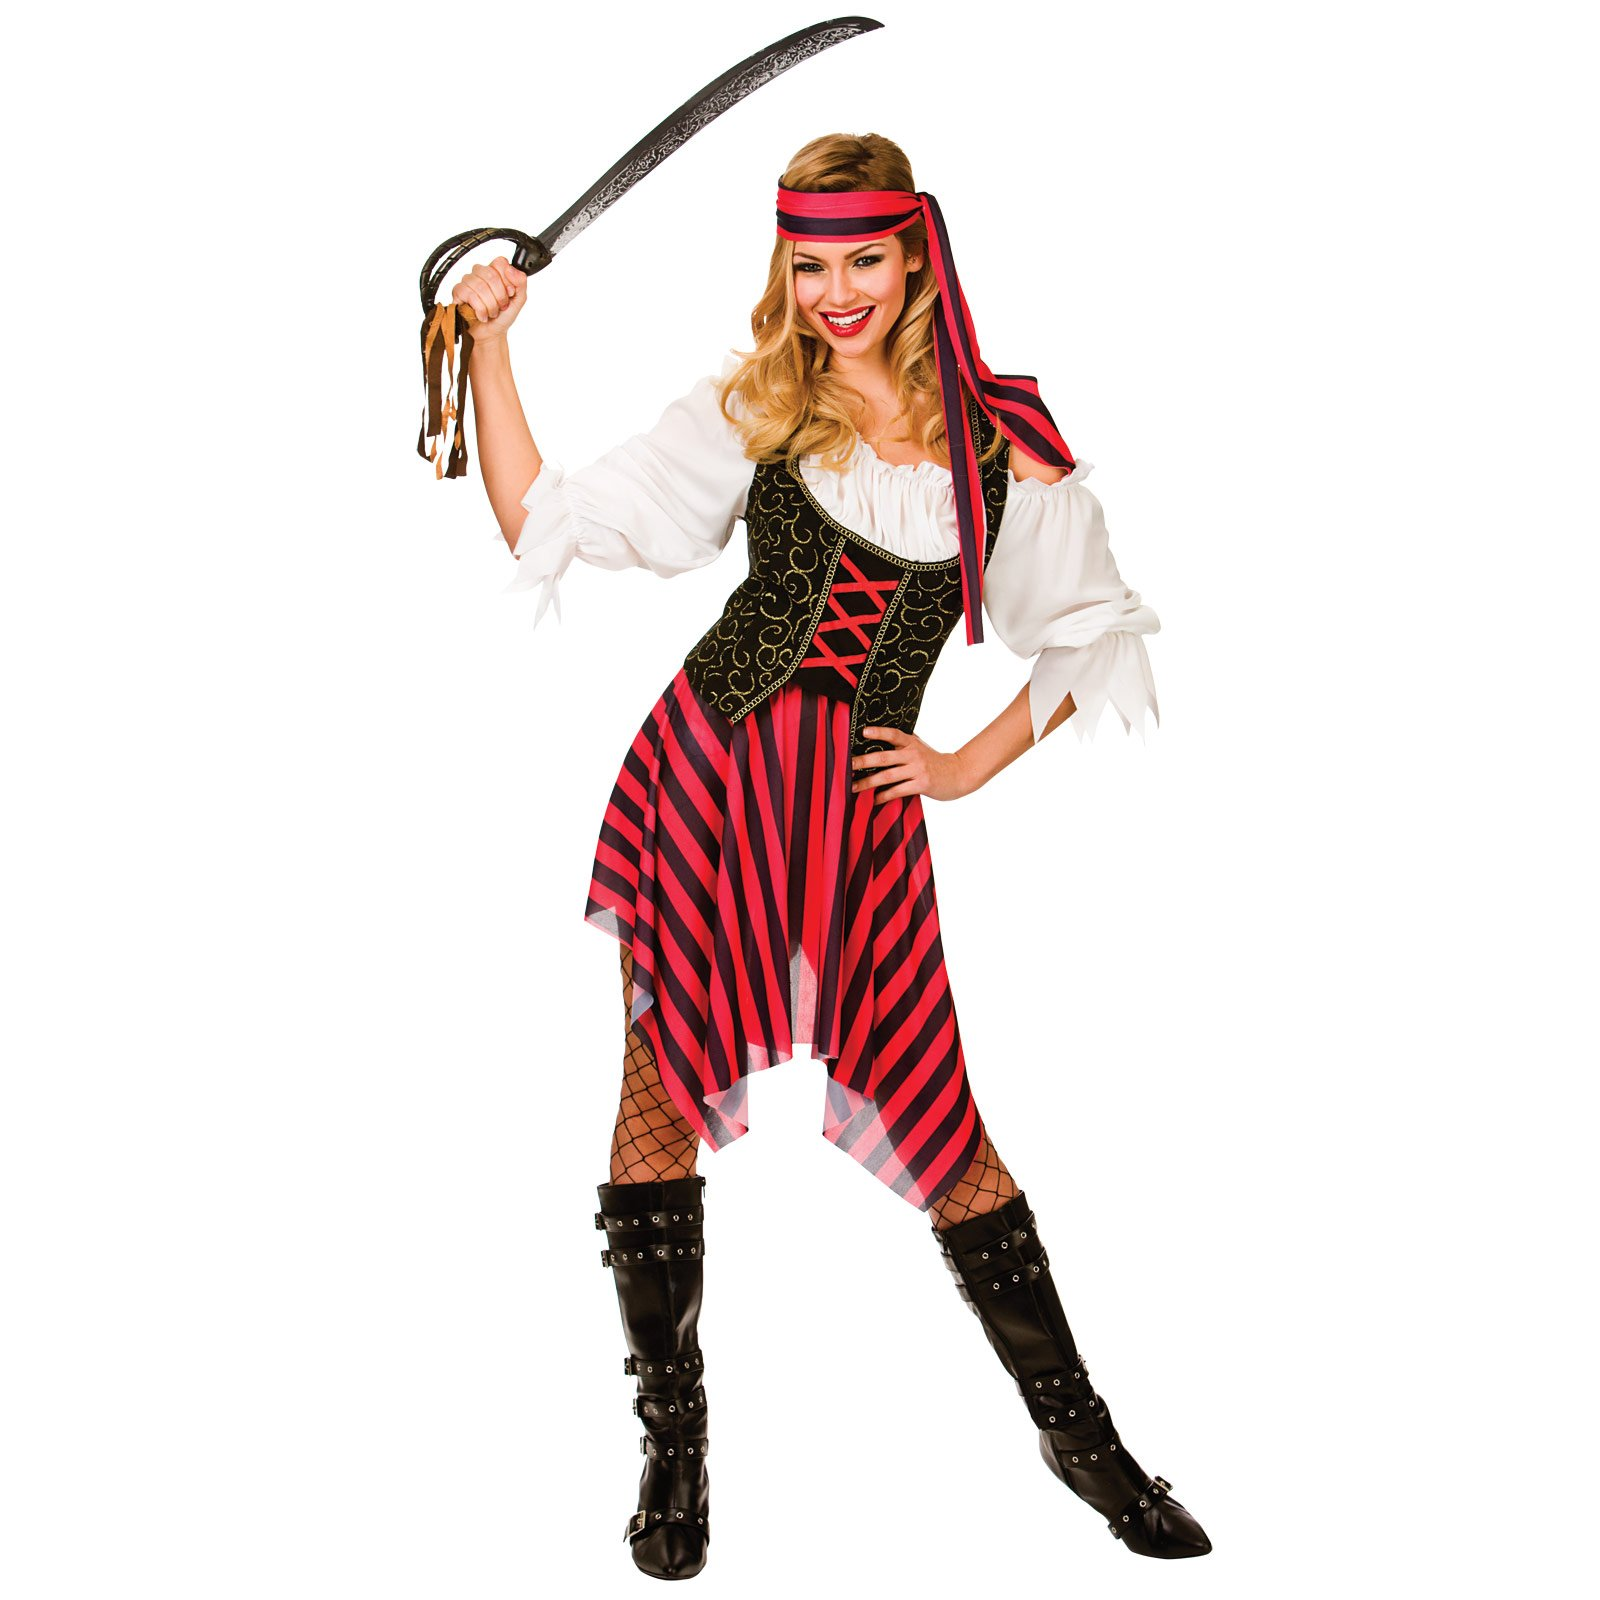 Ladies High Seas Pirate Halloween Ship Fancy Dress Up Party Costume Outfit New  sc 1 st  Amazon UK & Sea Costumes: Amazon.co.uk